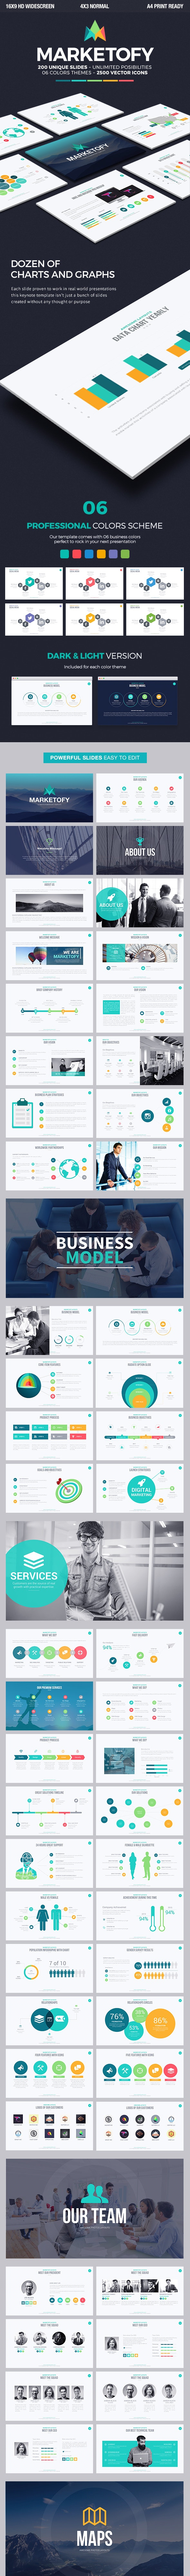 Marketofy - Ultimate Keynote Template - Business Keynote Templates